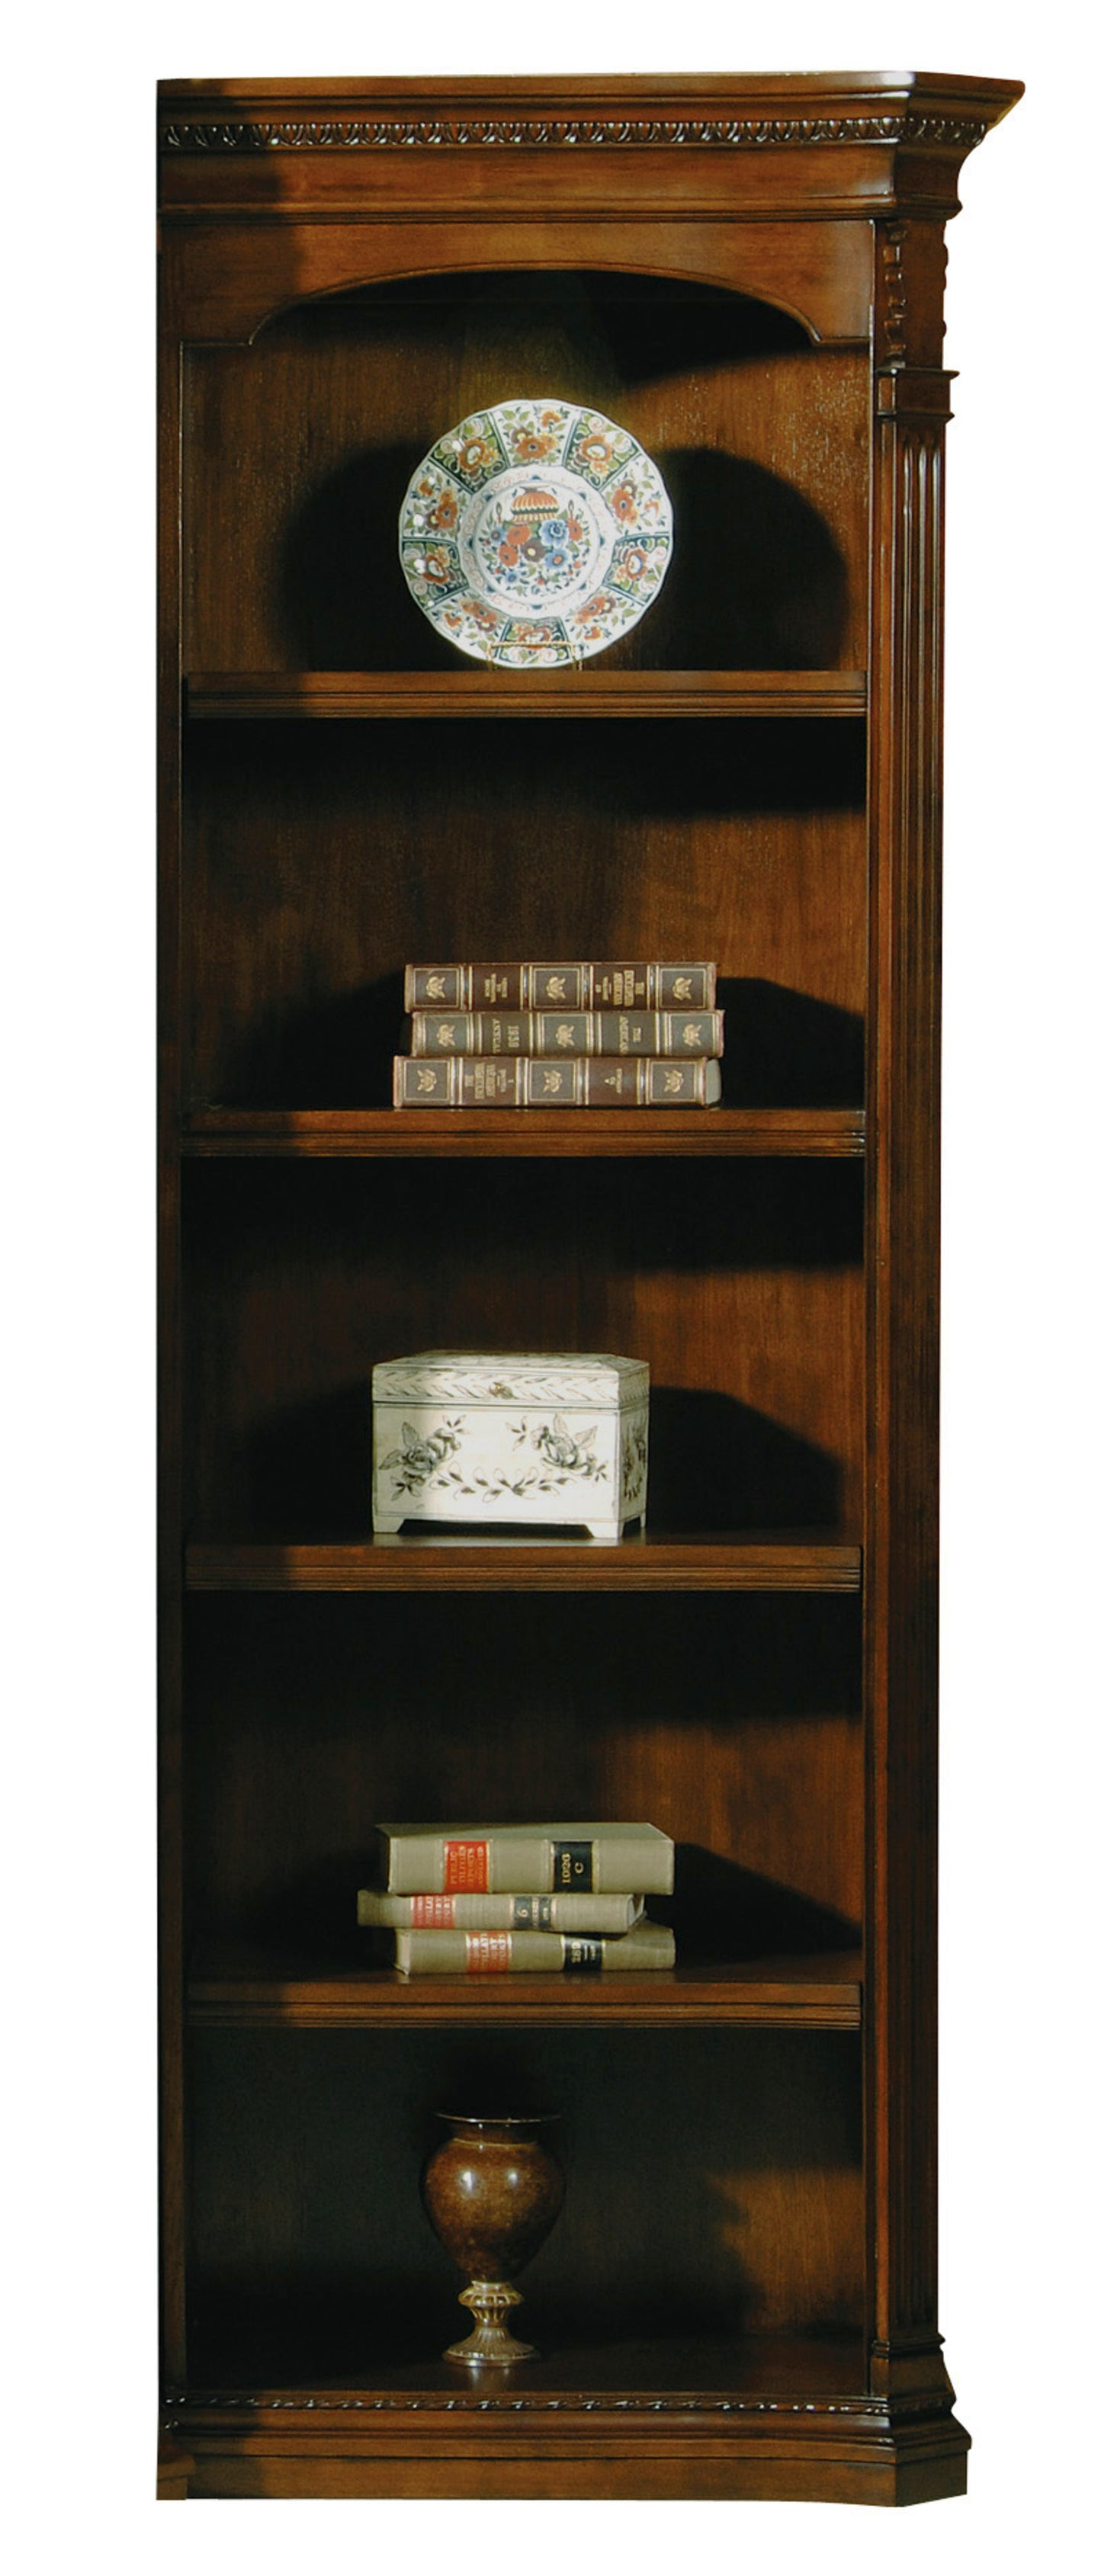 Hekman Office Executive Right Pier Bookshelf in Old World Walnut 79165 - Curios And More